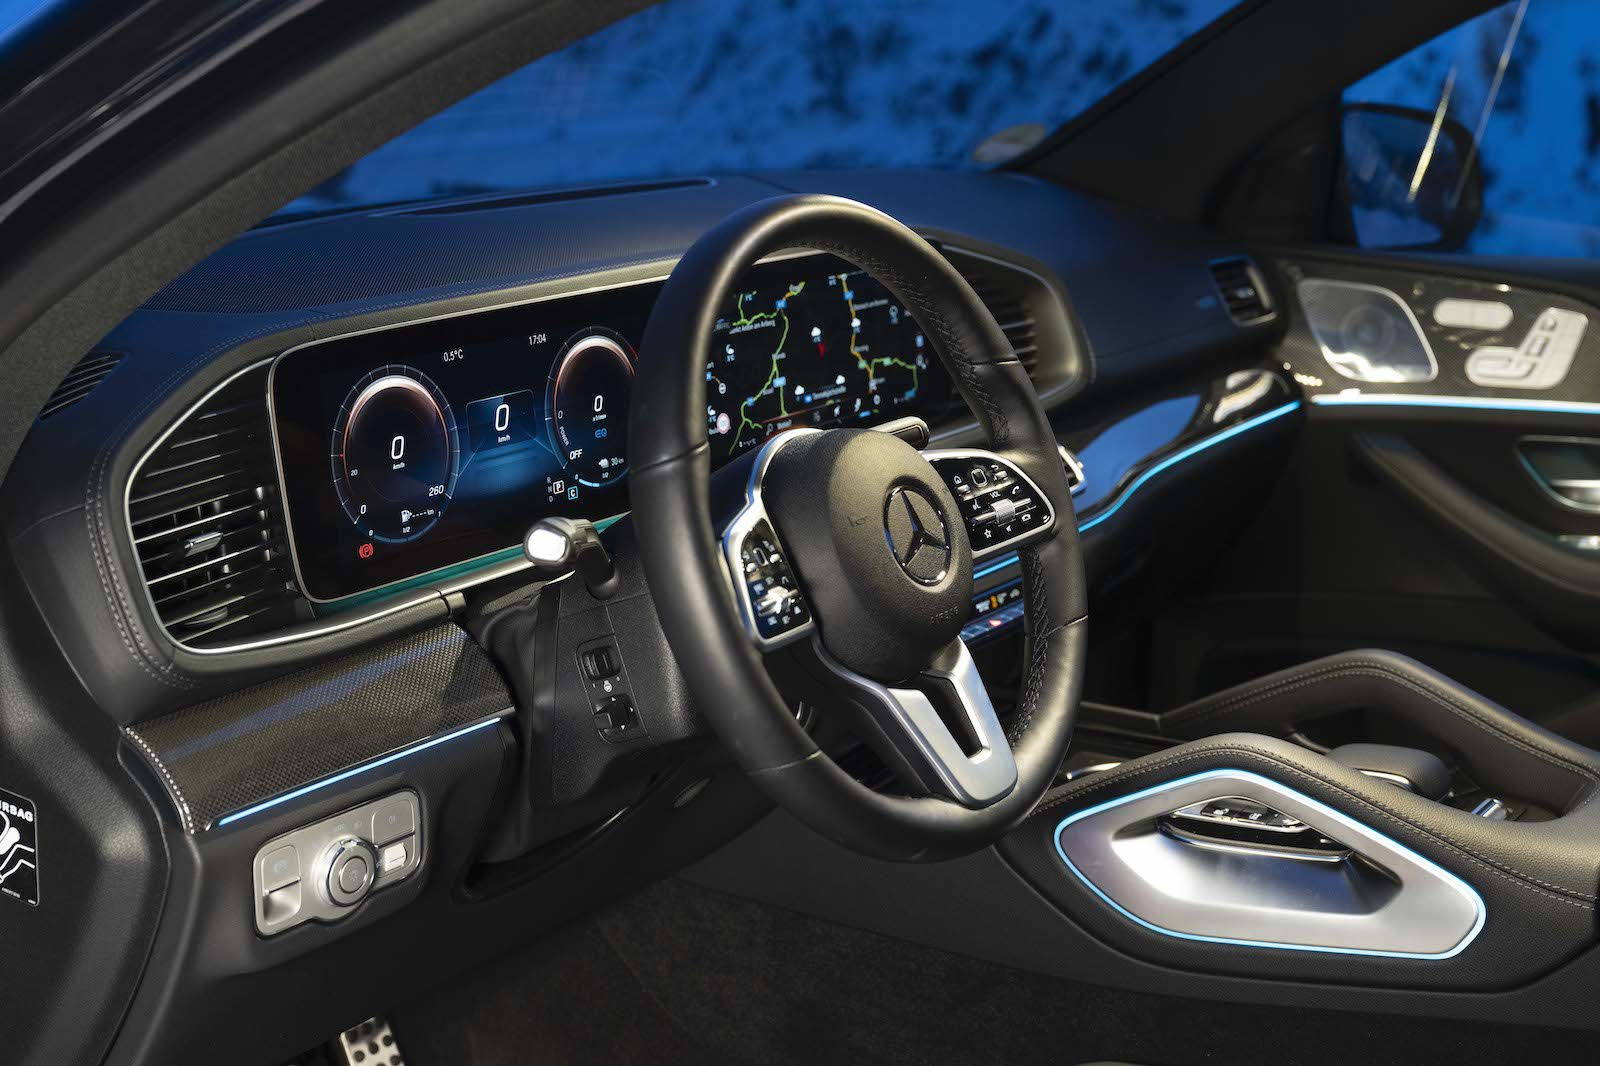 2020 Mercedes GLE Coupe interior